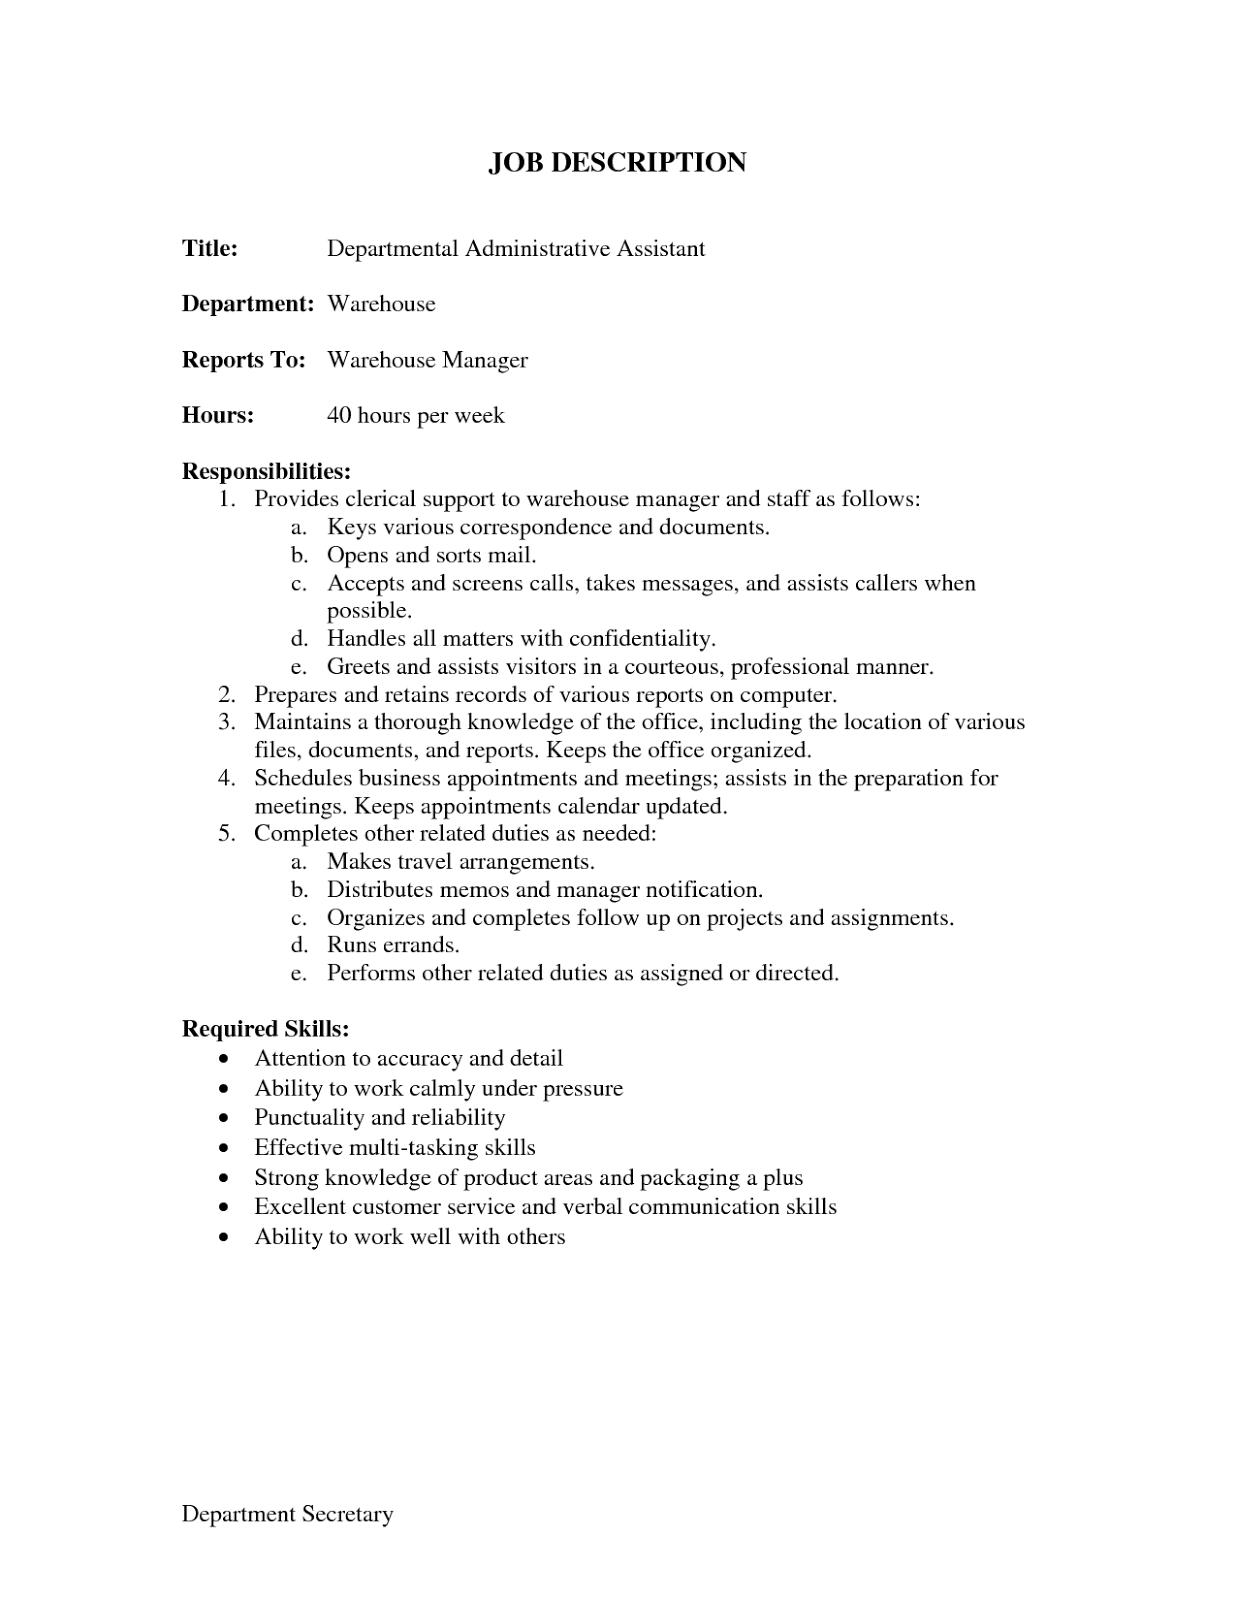 administrative assistant duties resume Job Description for Administrative Assistant for Resume spesific departement Administrative Assistant